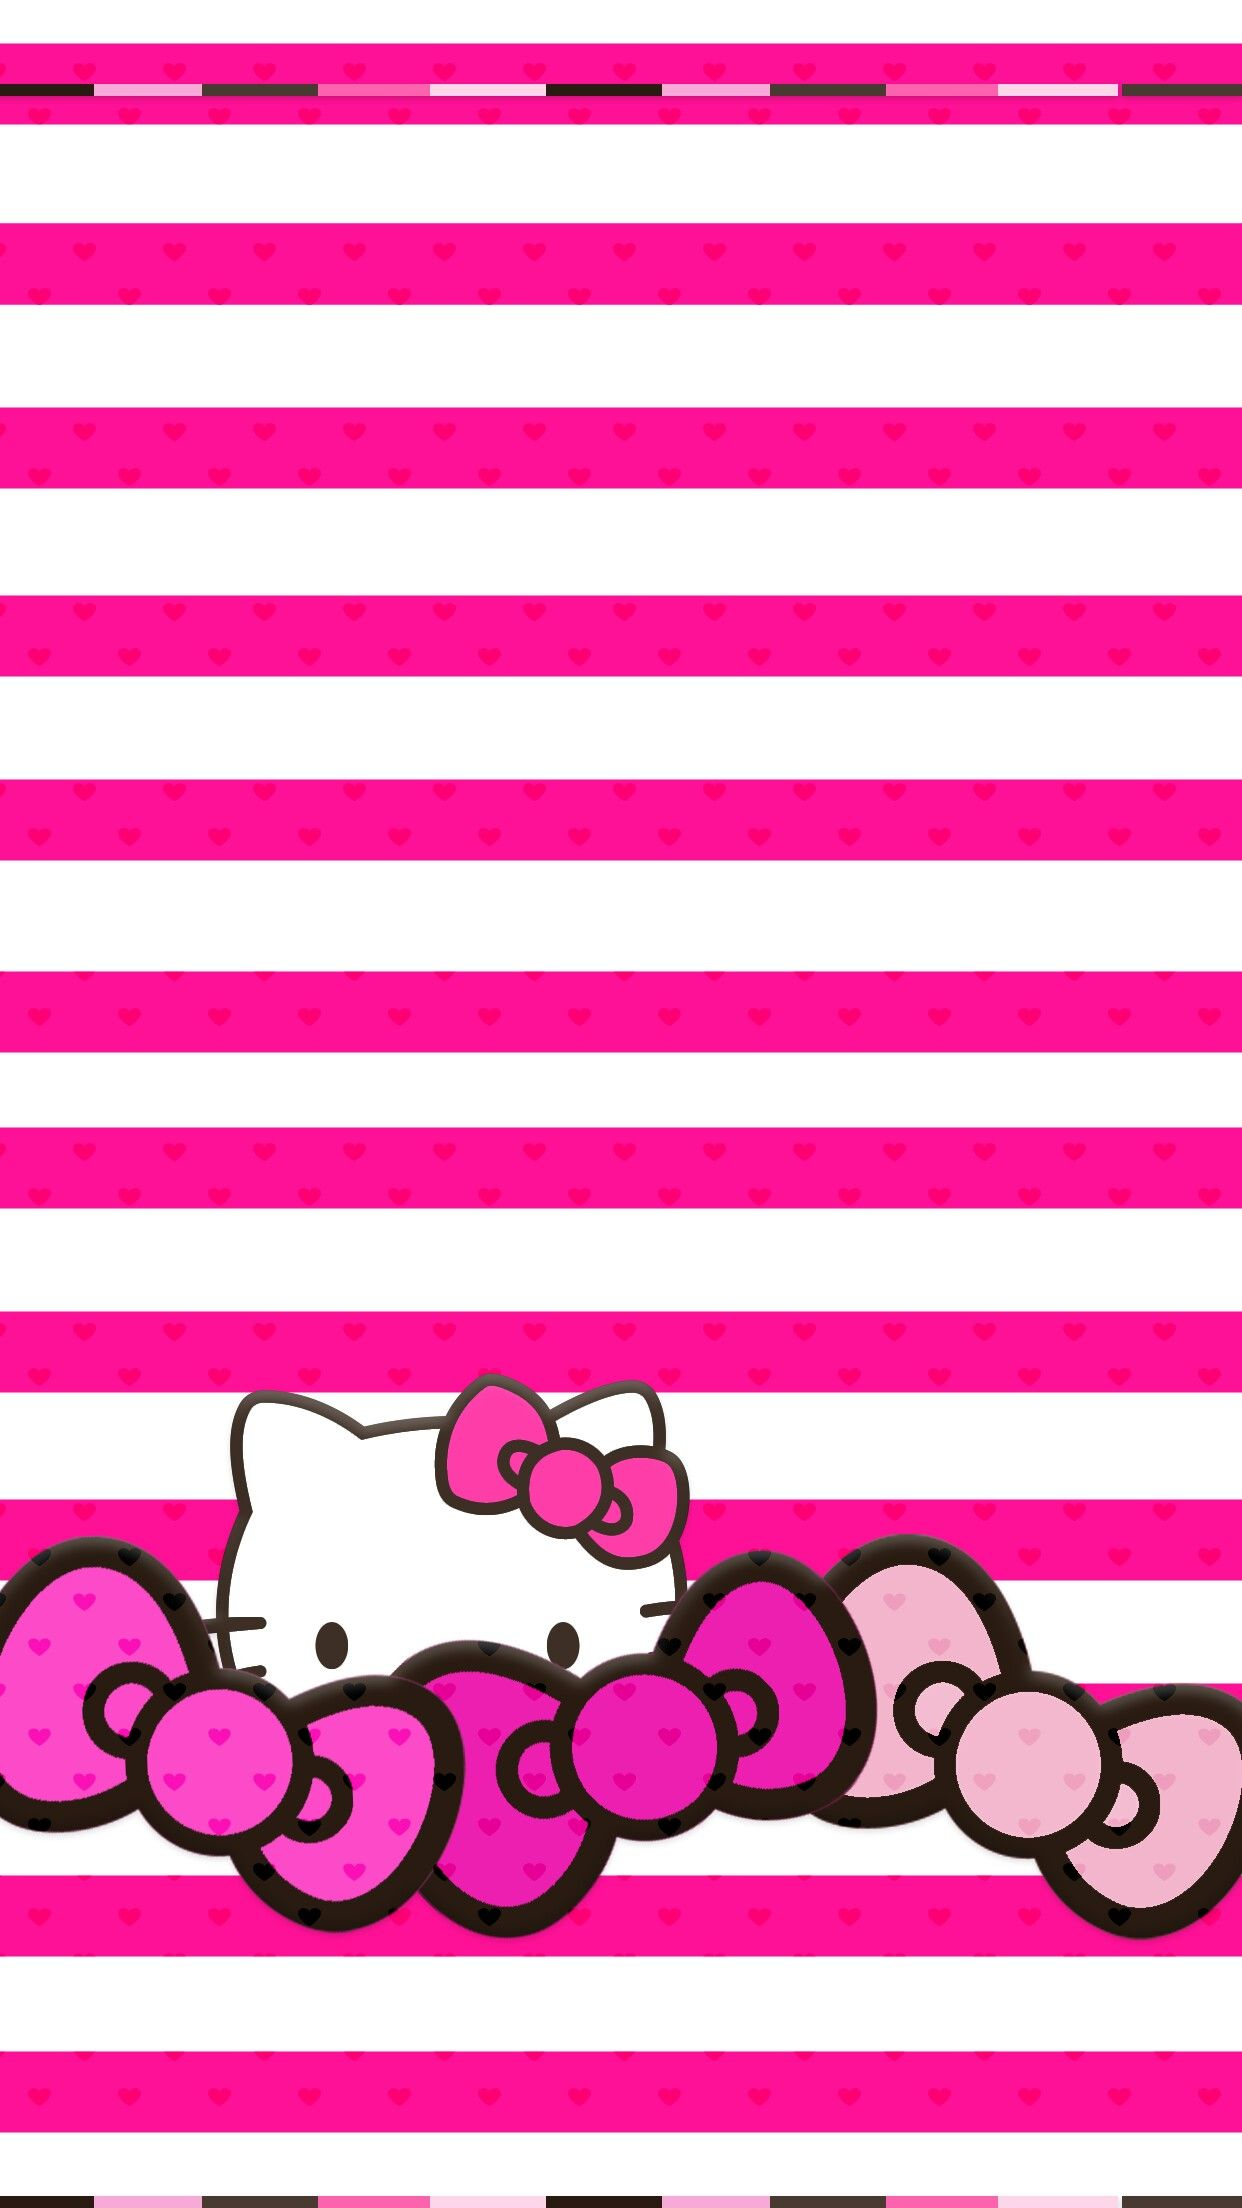 Hello Kitty Backgrounds, Hello Kitty Wallpaper, Hello Kitty Pictures, Wallpaper